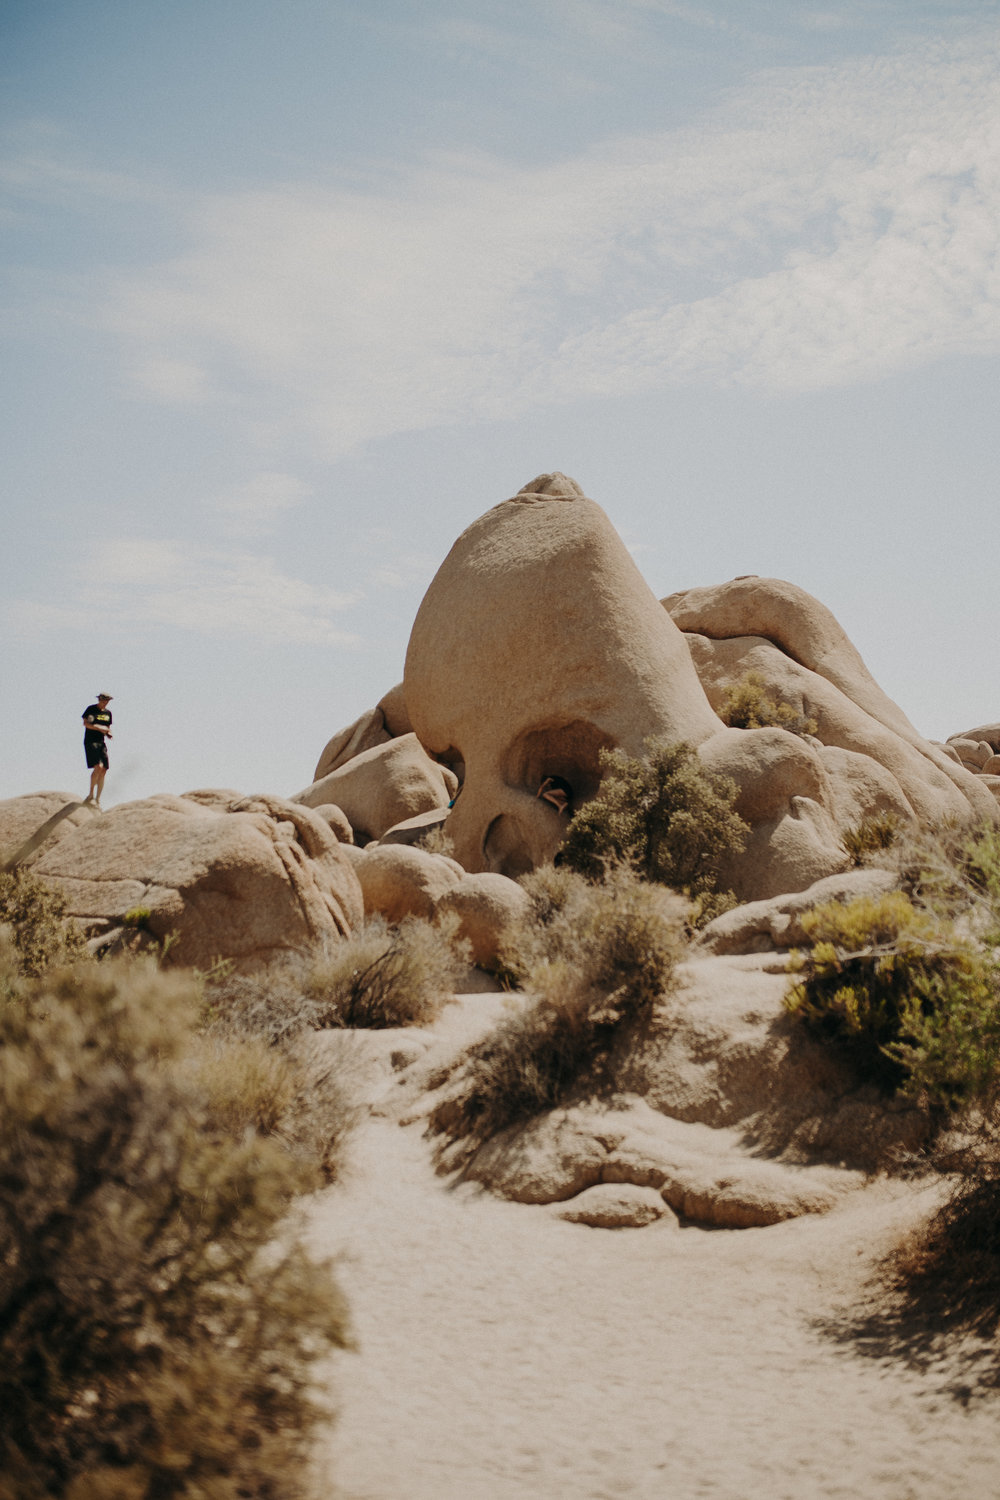 Joshua-Tree-National-Park-11.jpg